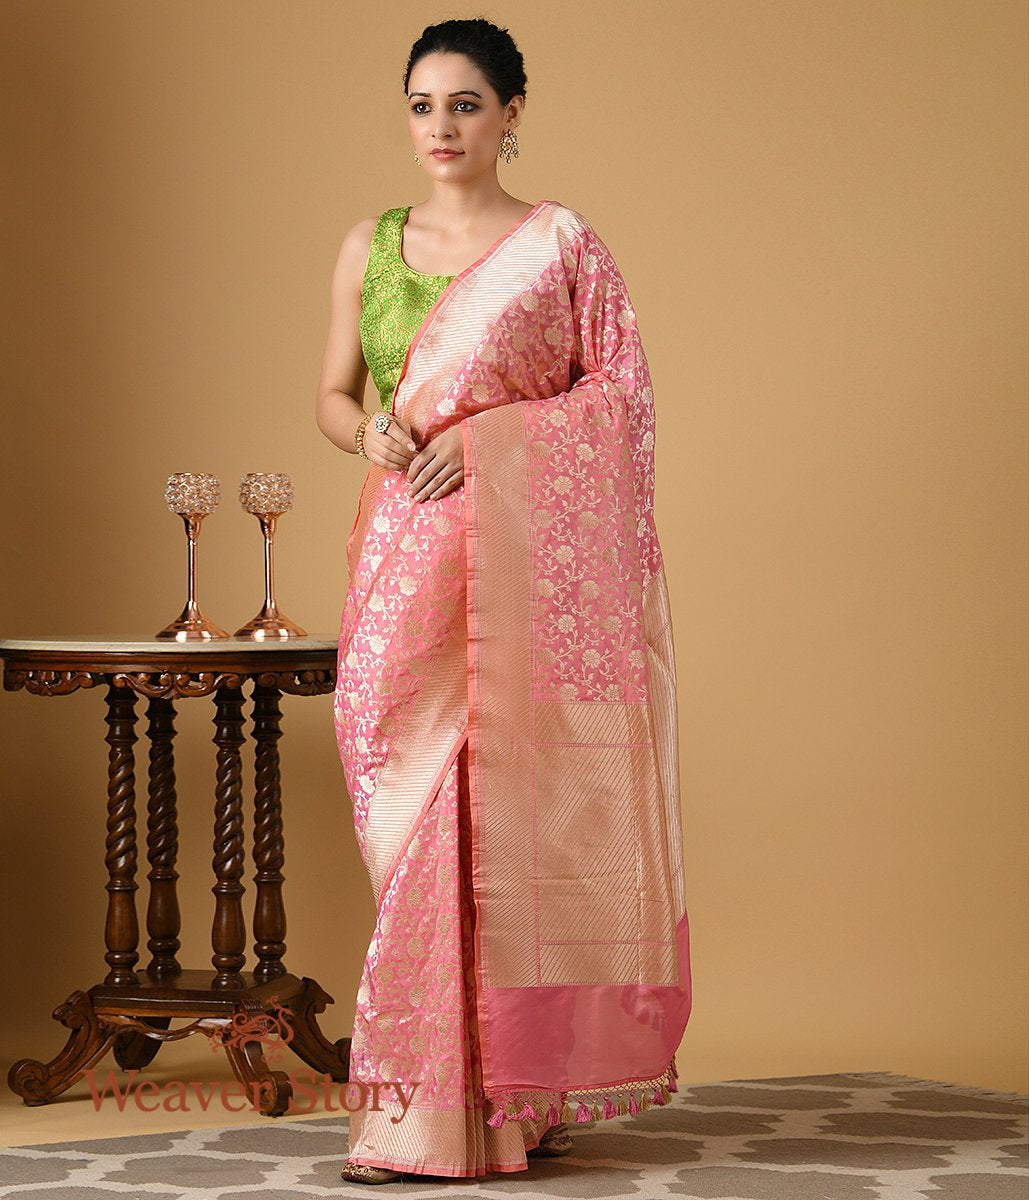 Handwoven Light Pink Floral Jangla Saree